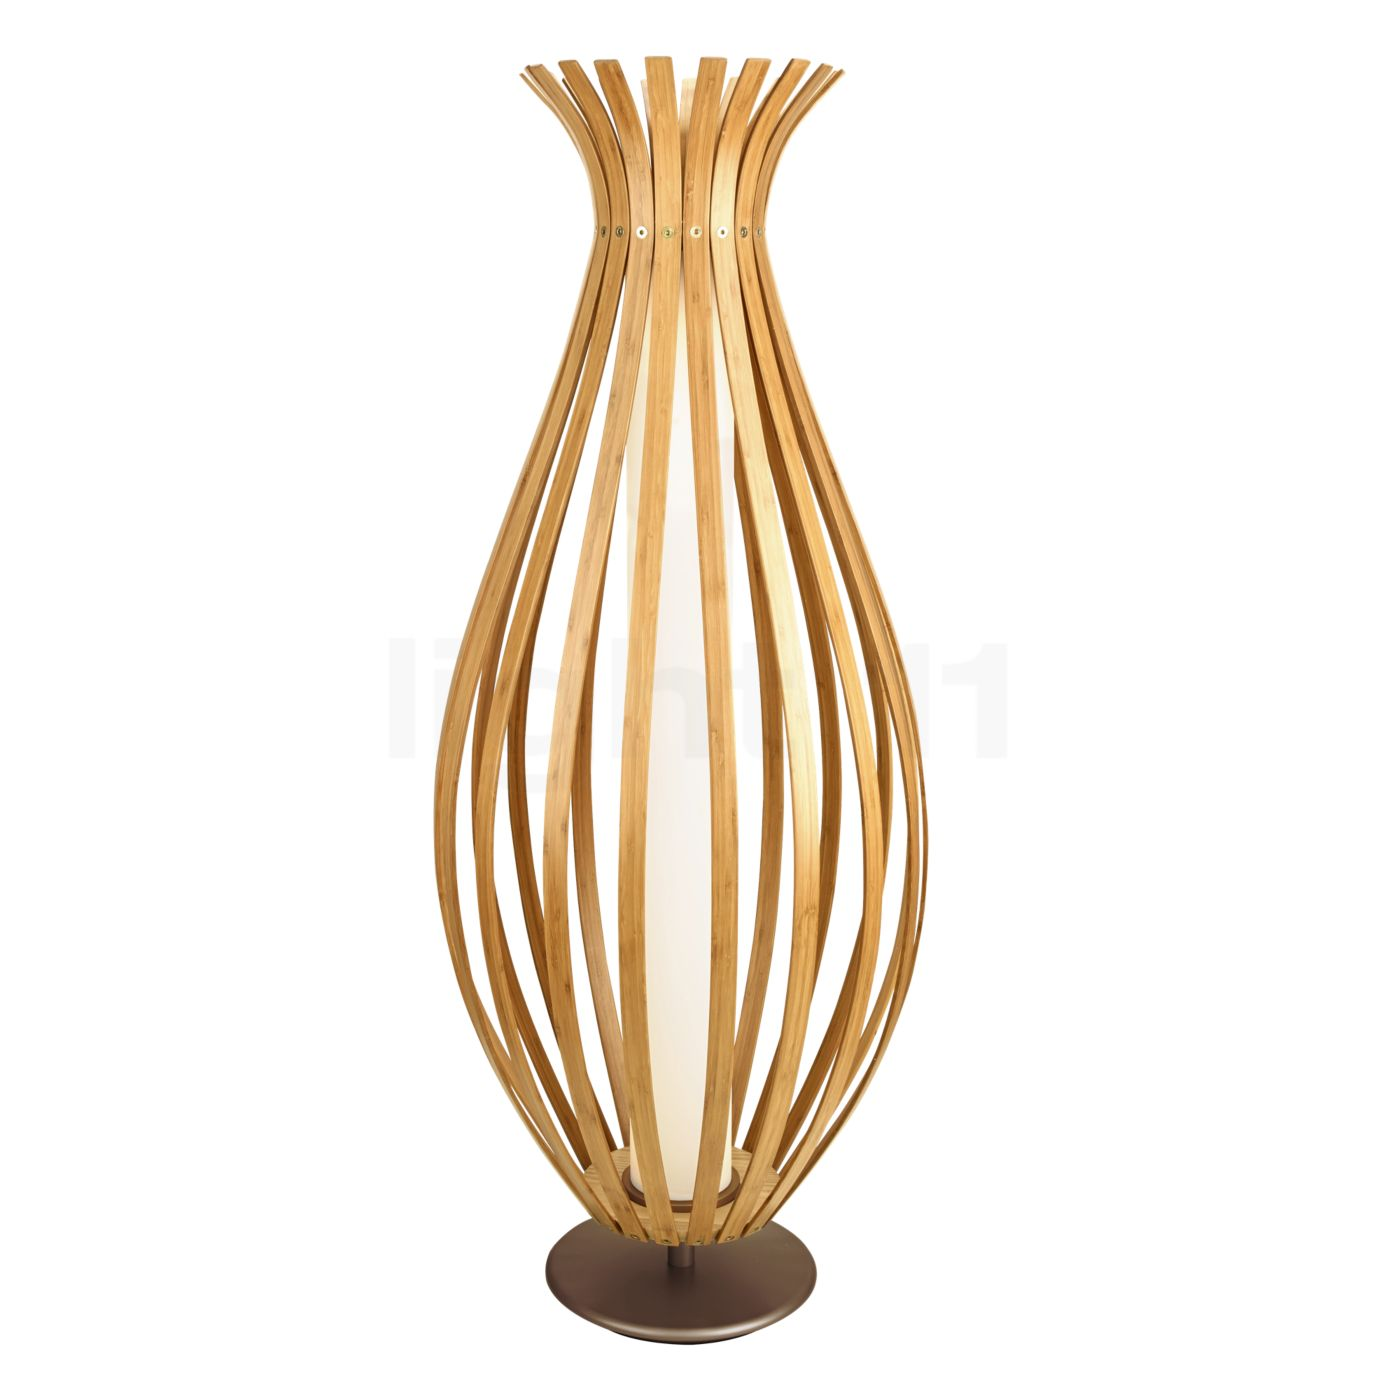 LEDS C4 Bamboo Floor lamp LED Chandeliers at light11